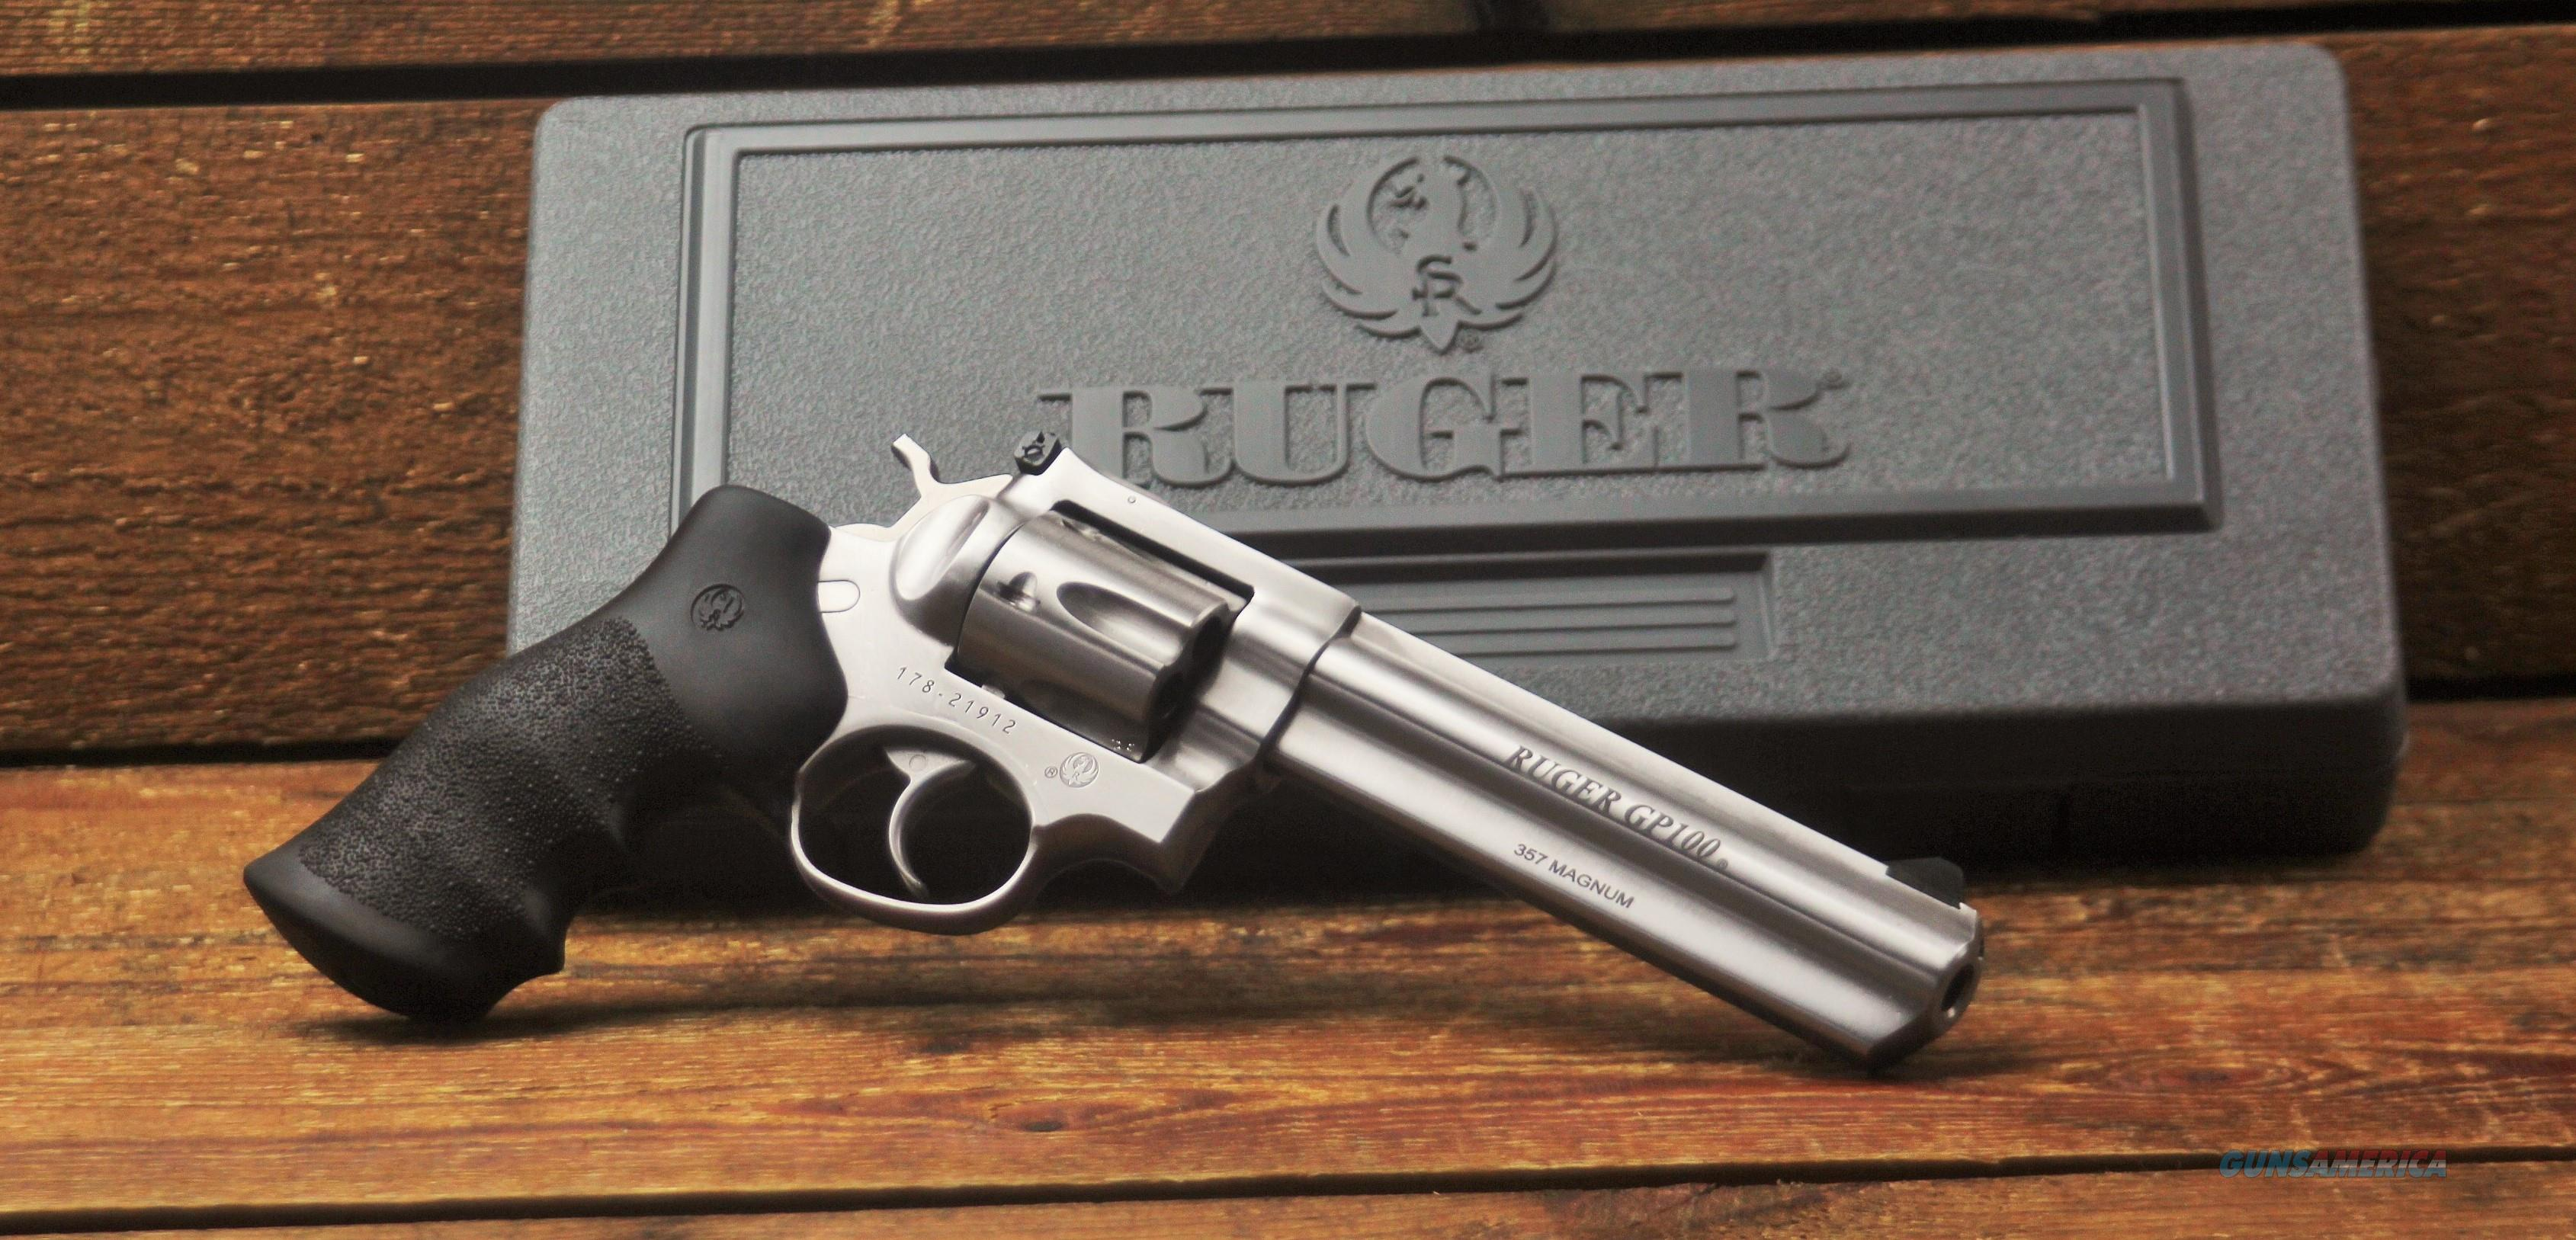 1707 Ruger KGP161 GP100 .357 Remington Magnum precision cowboy-rifled EASY PAY $60  Guns > Pistols > Ruger Double Action Revolver > GP100